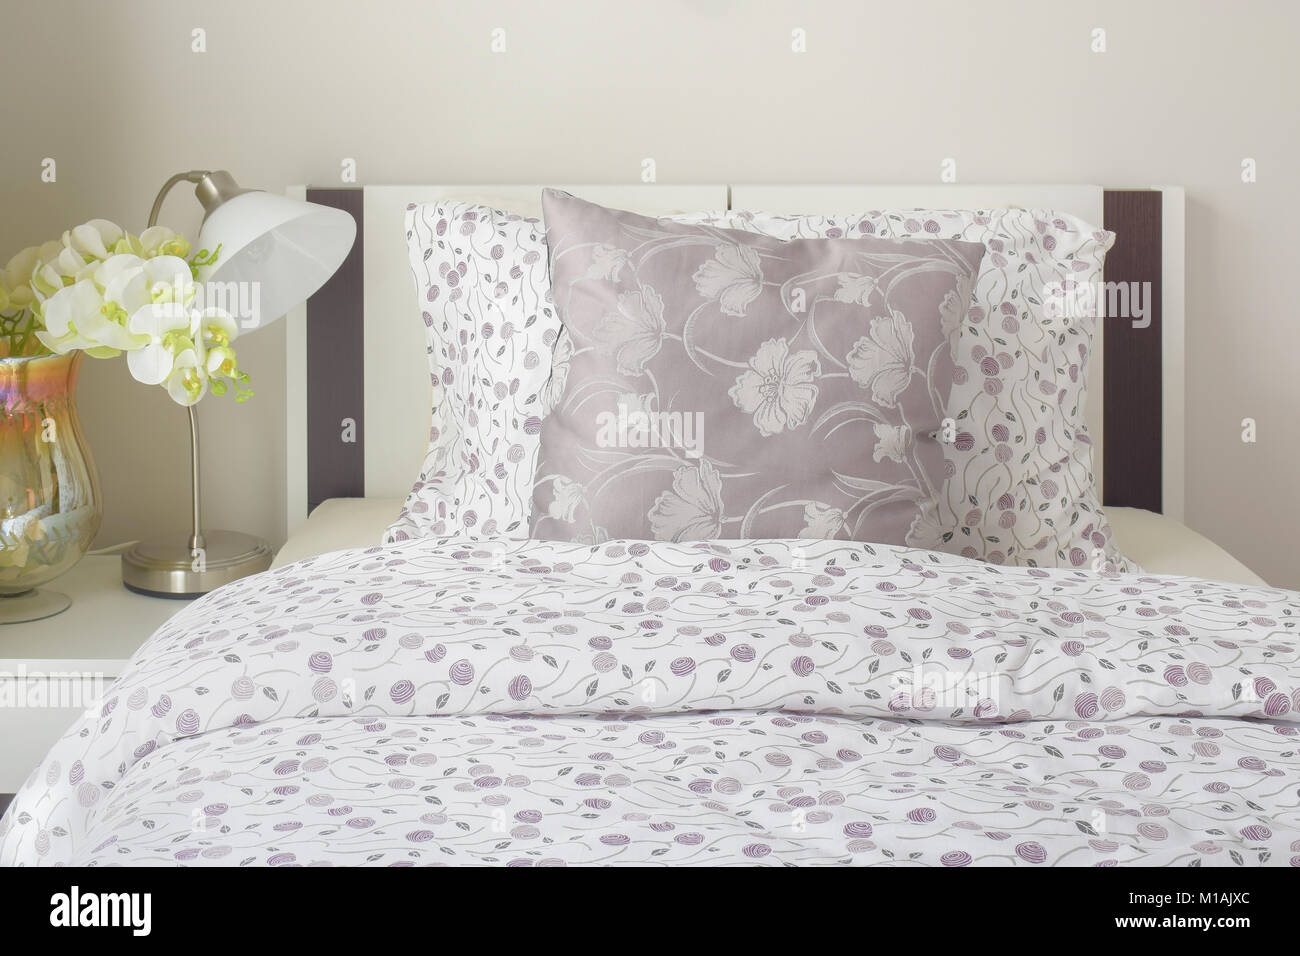 Tiny Lavender Pattern Style Bedding In Bedroom With White ...